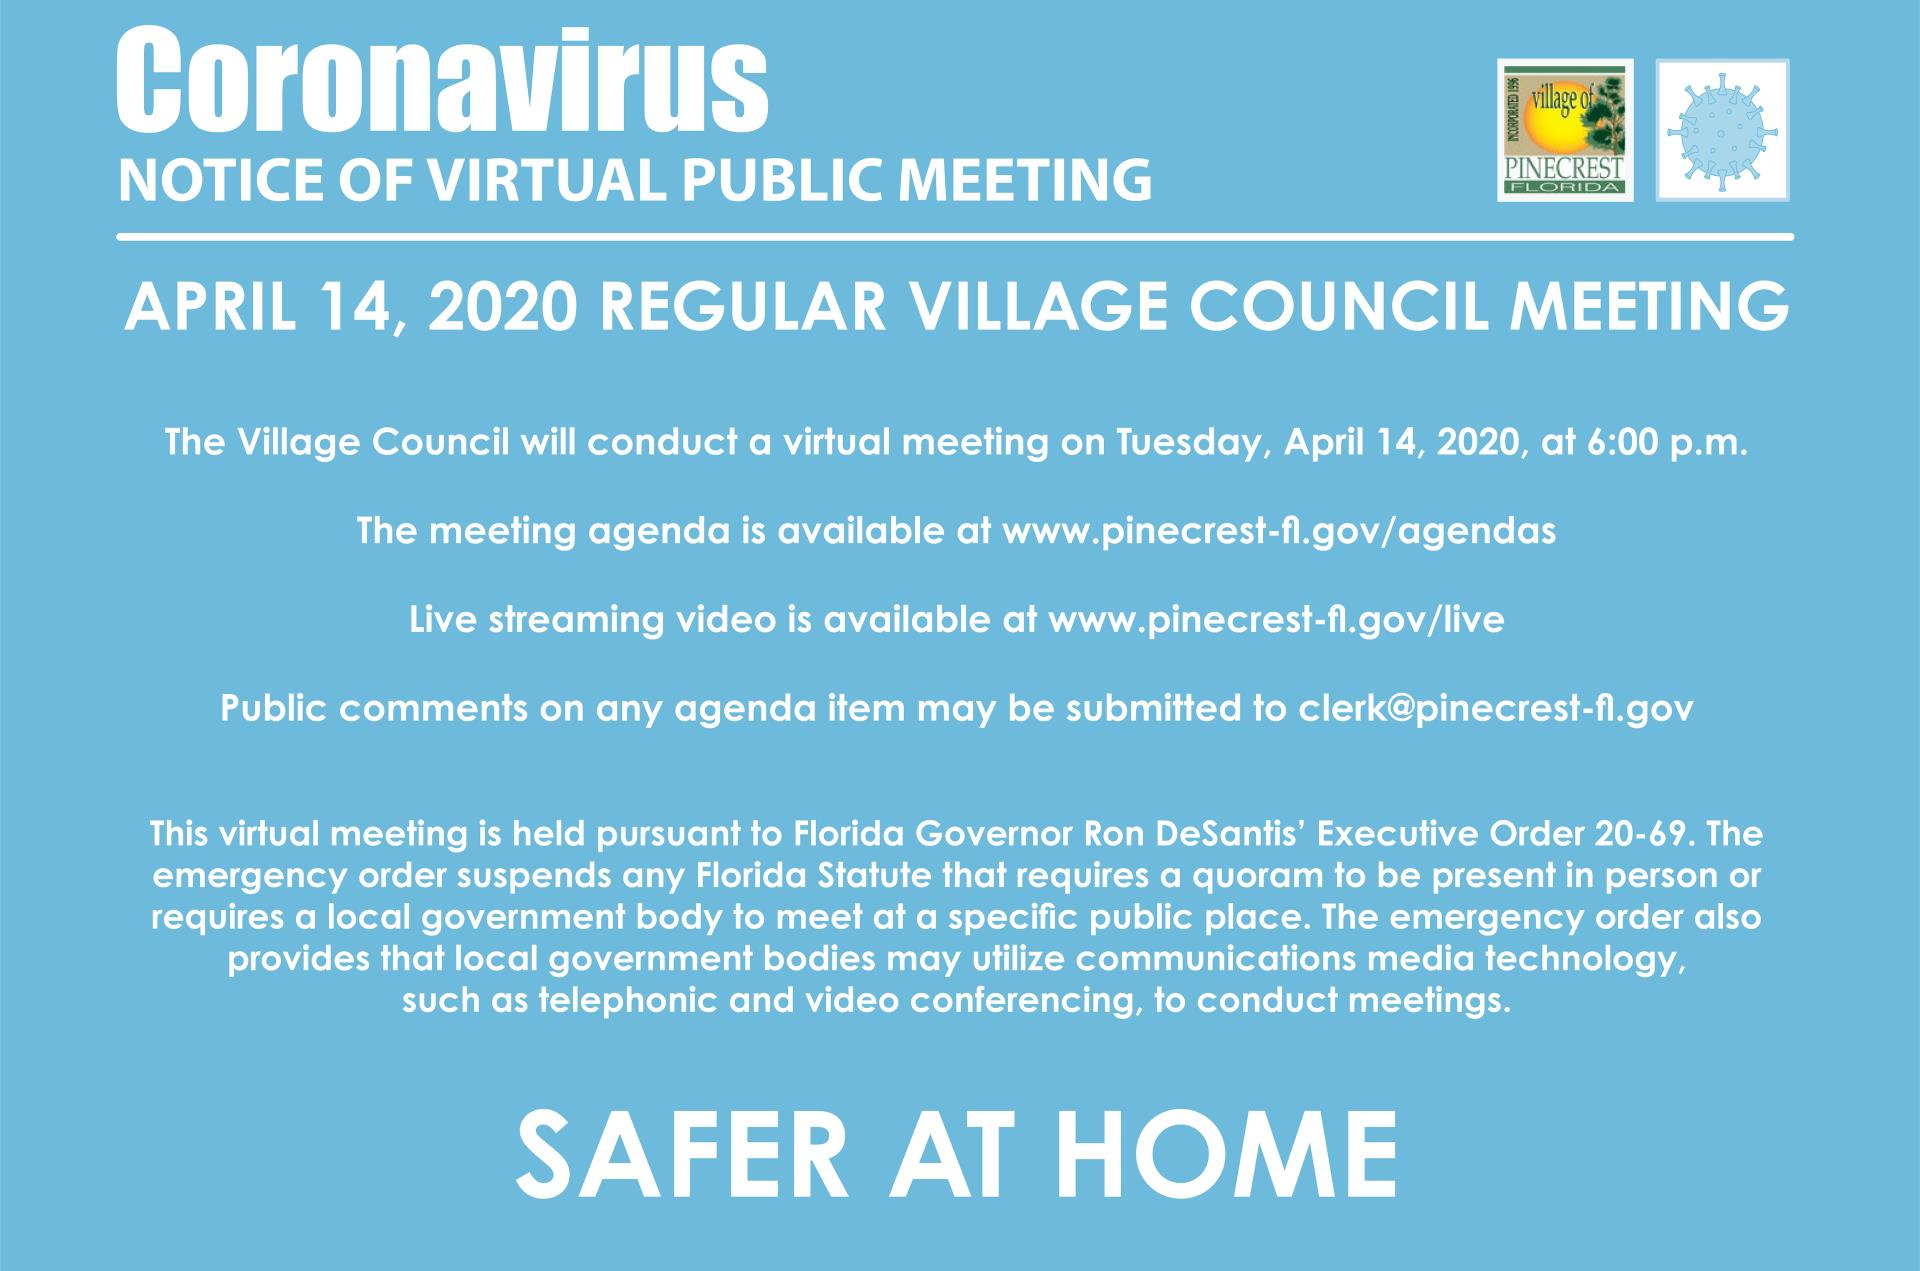 April 14, 2020 Virtual Village Council Meeting